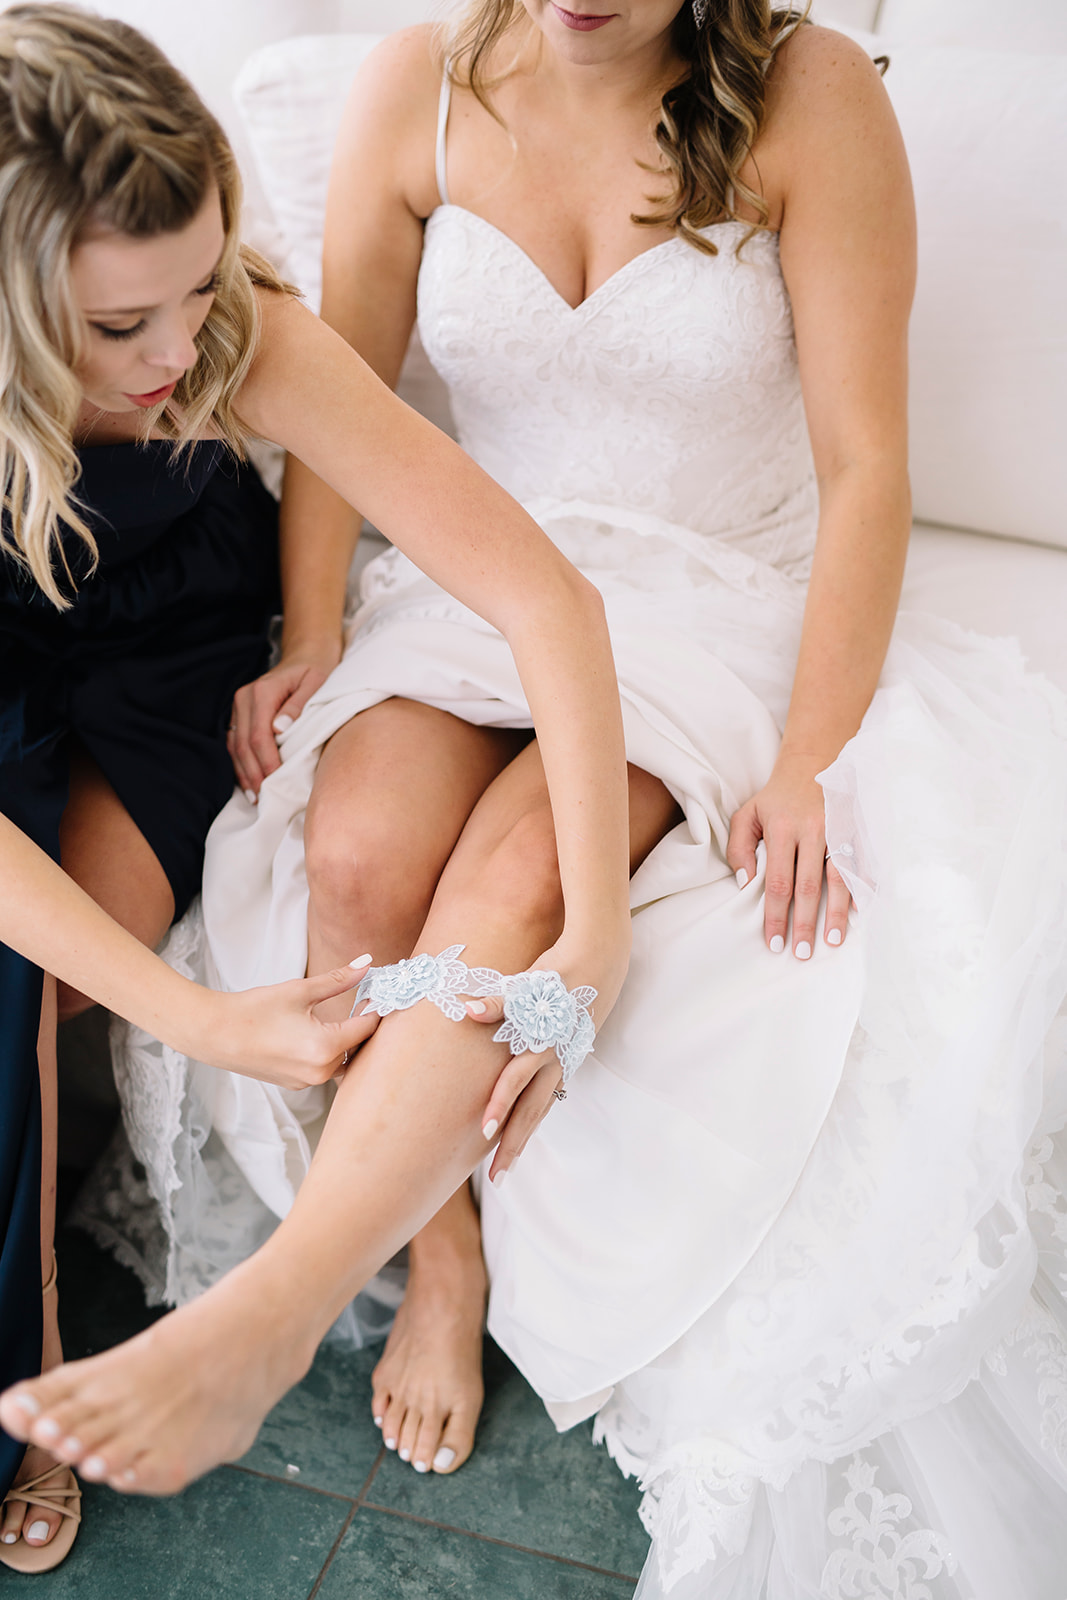 bridal salons destin florida.jpg